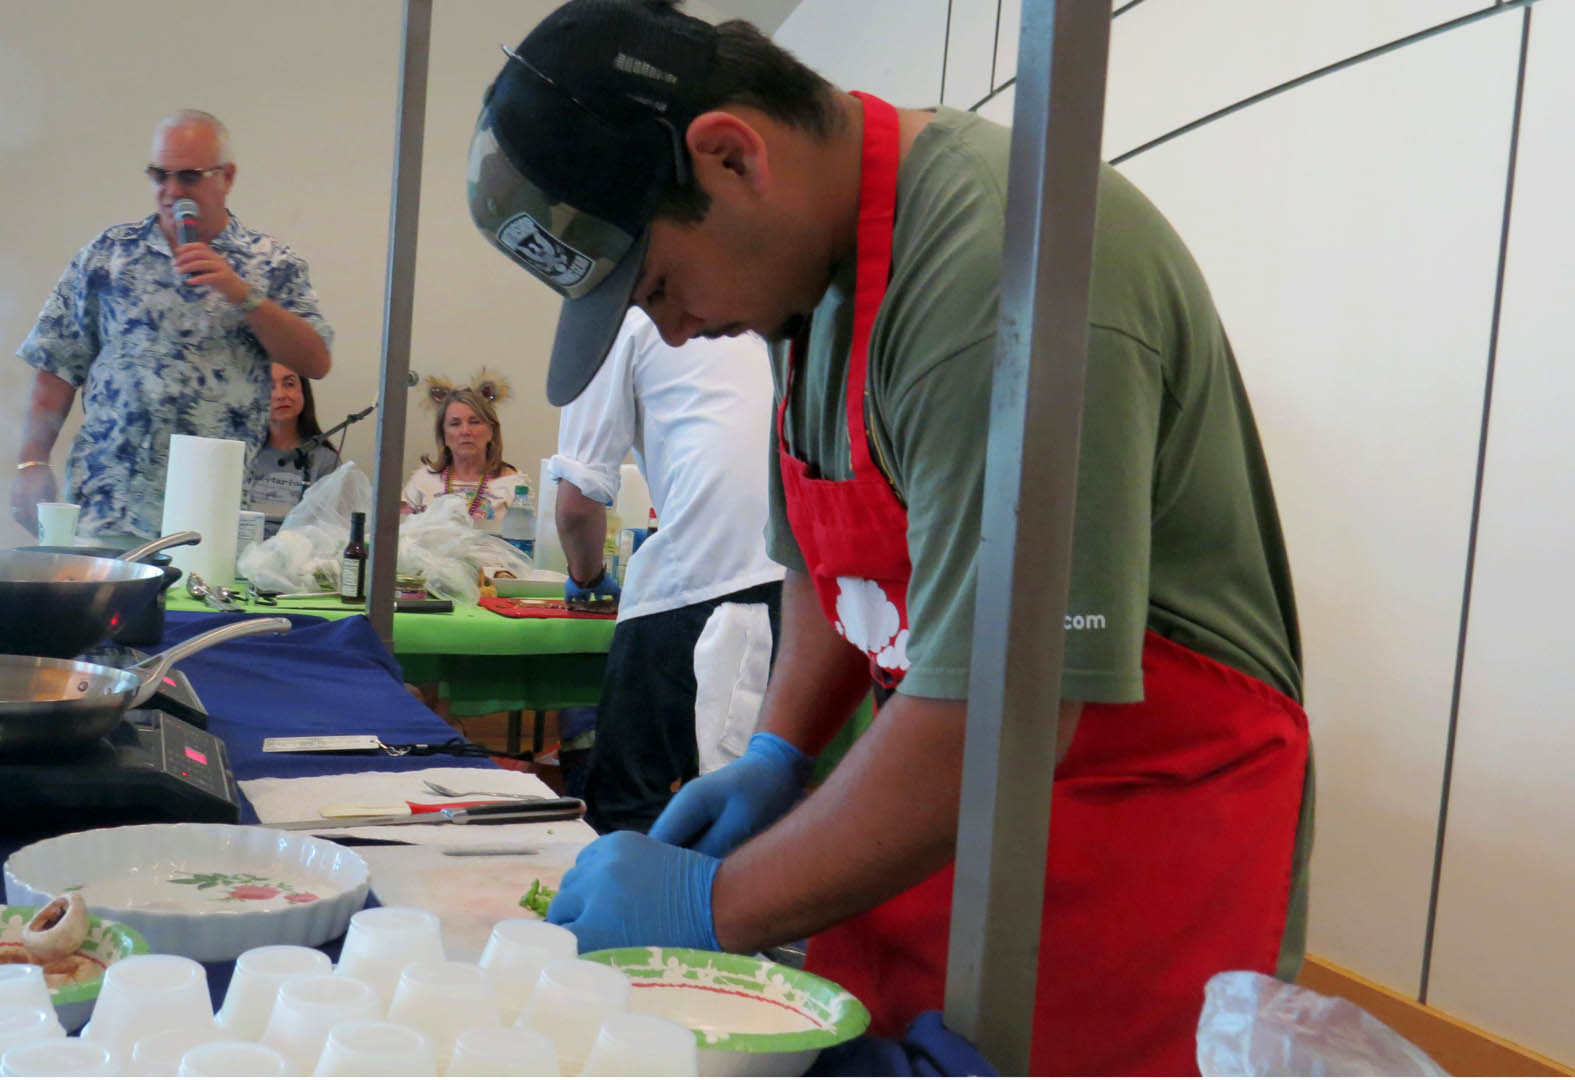 Two students win inaugural cooking contest at Mushroom Mardi Gras